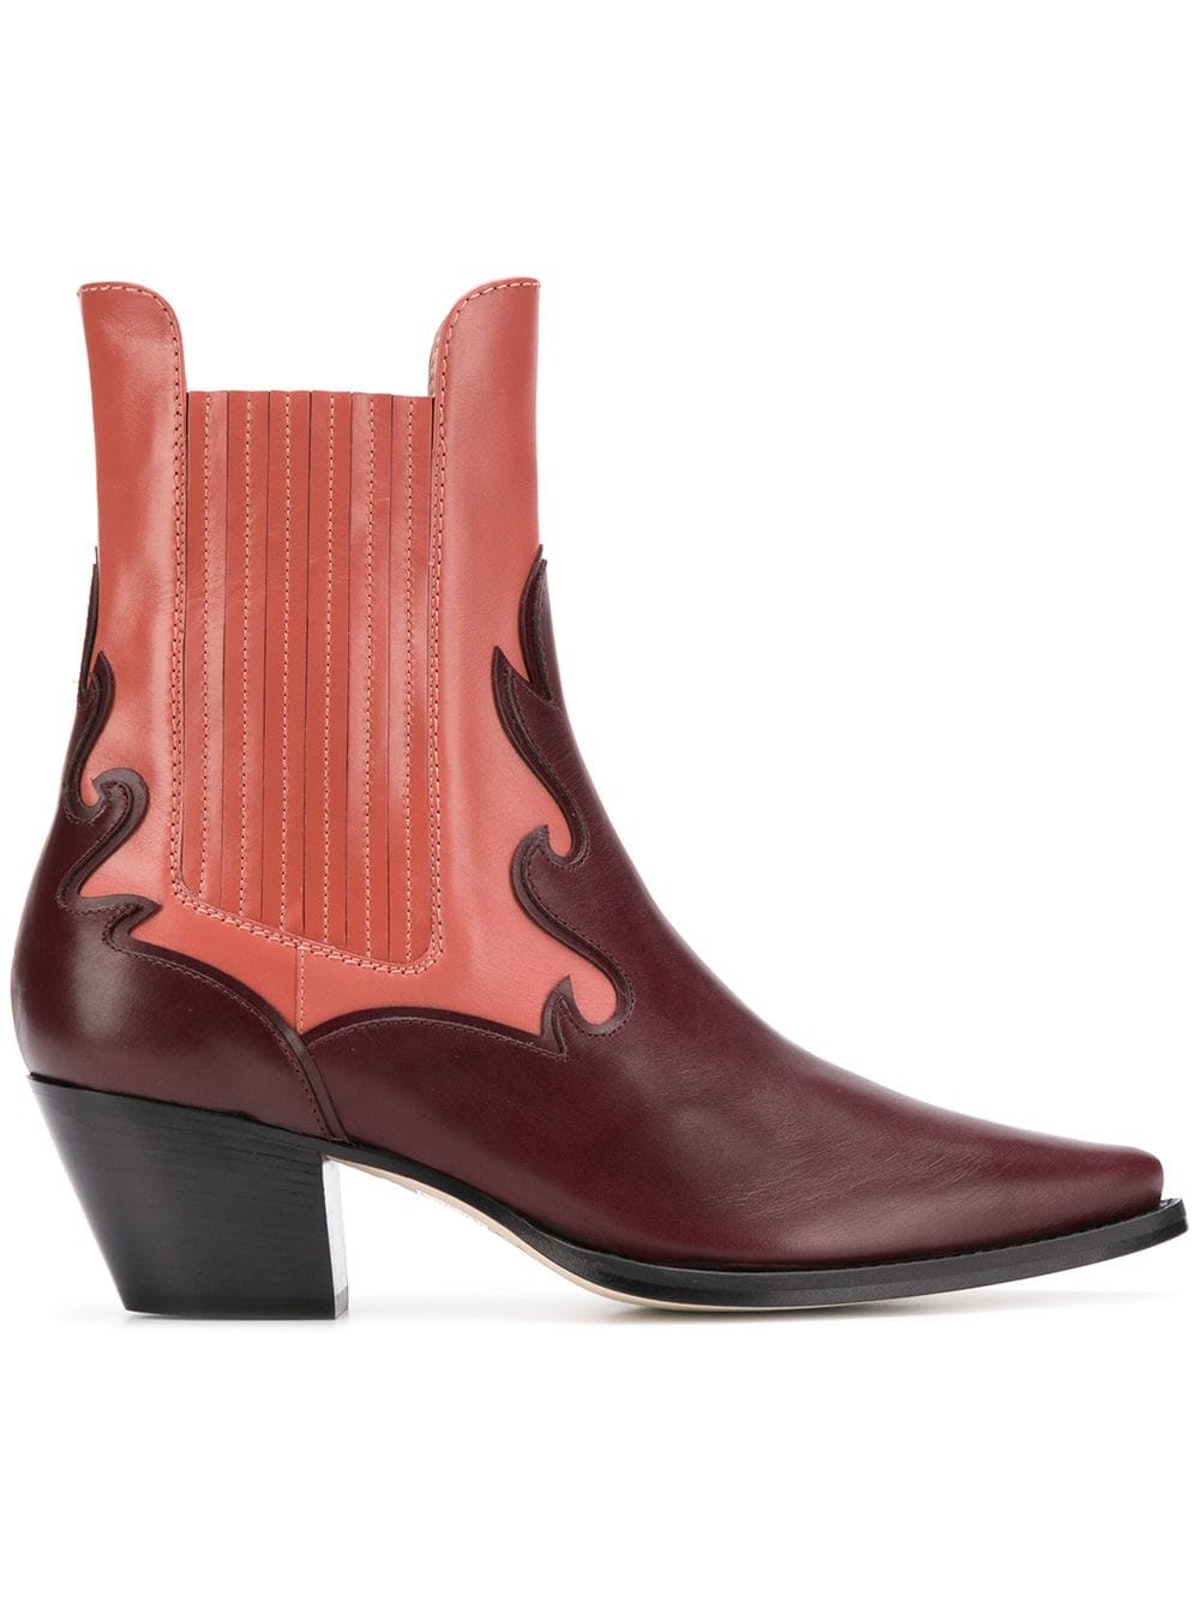 Womens Boots 10 Best Western Boots